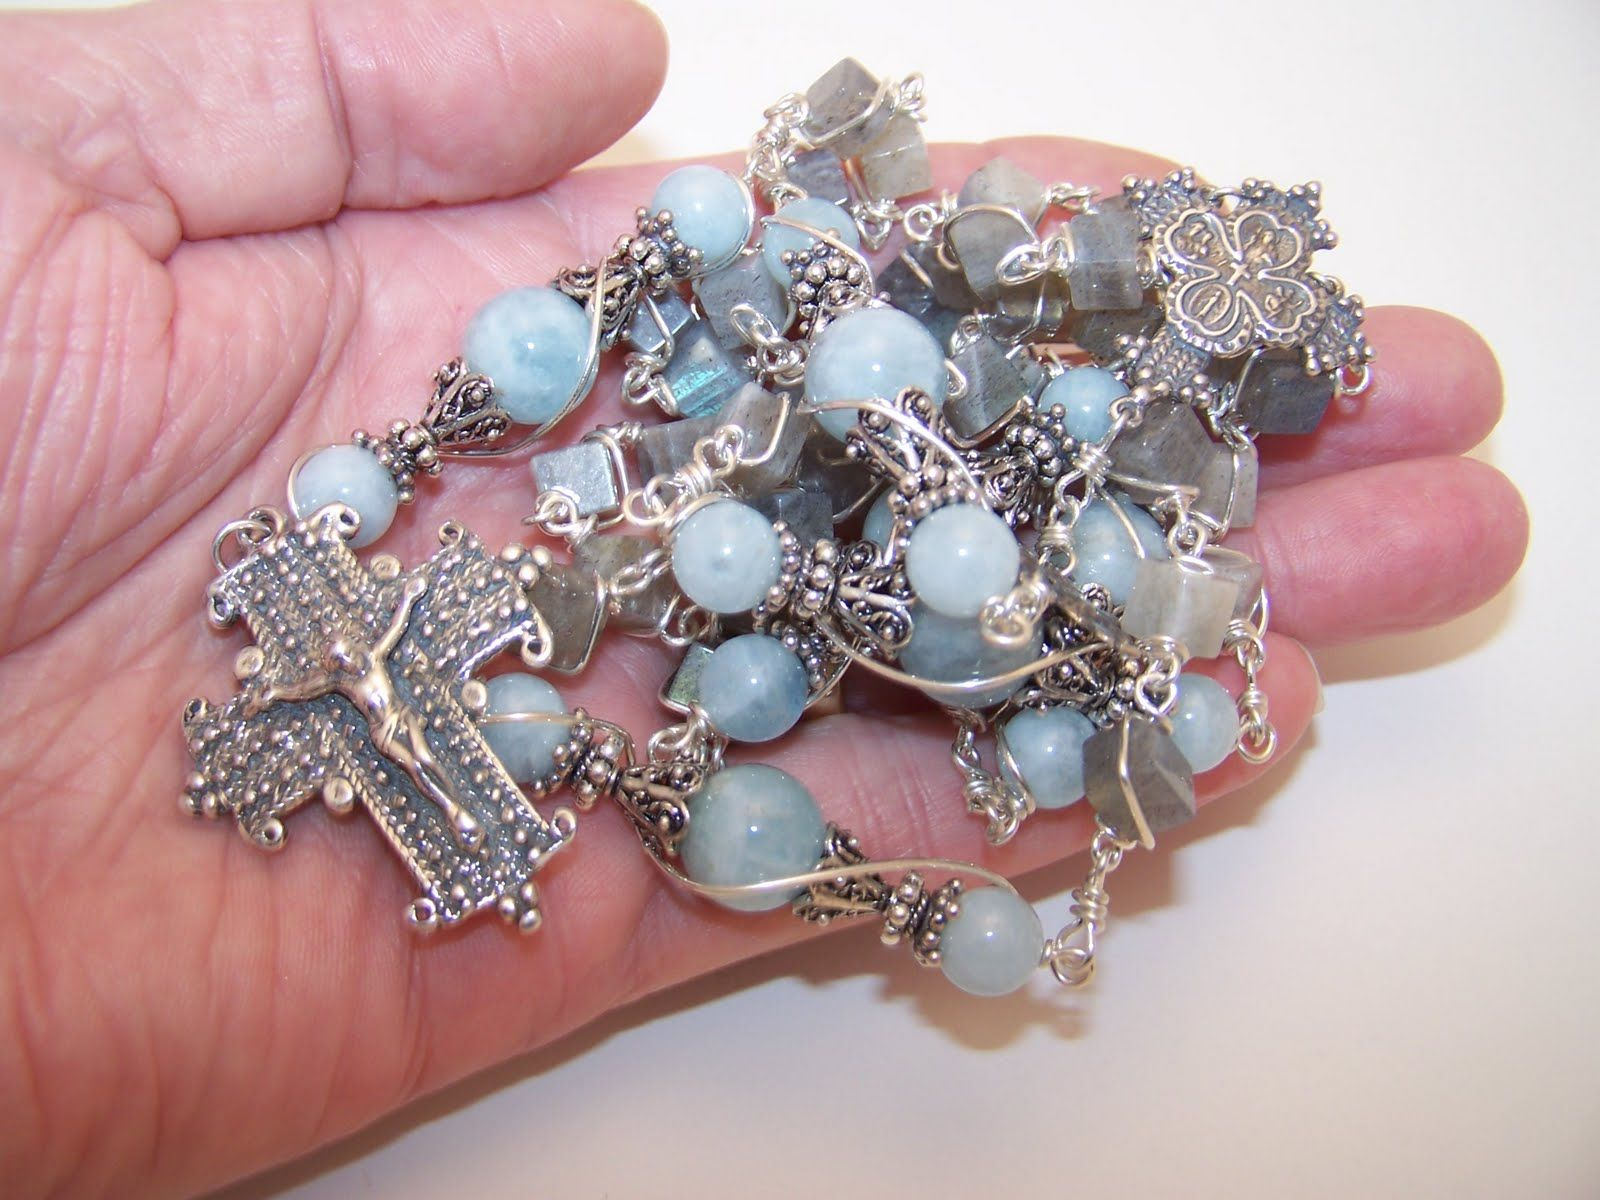 We are a community of Etsy artists who primarily create rosaries and chaplets. We come together to offer each other fellowship and support in art, business, and life.